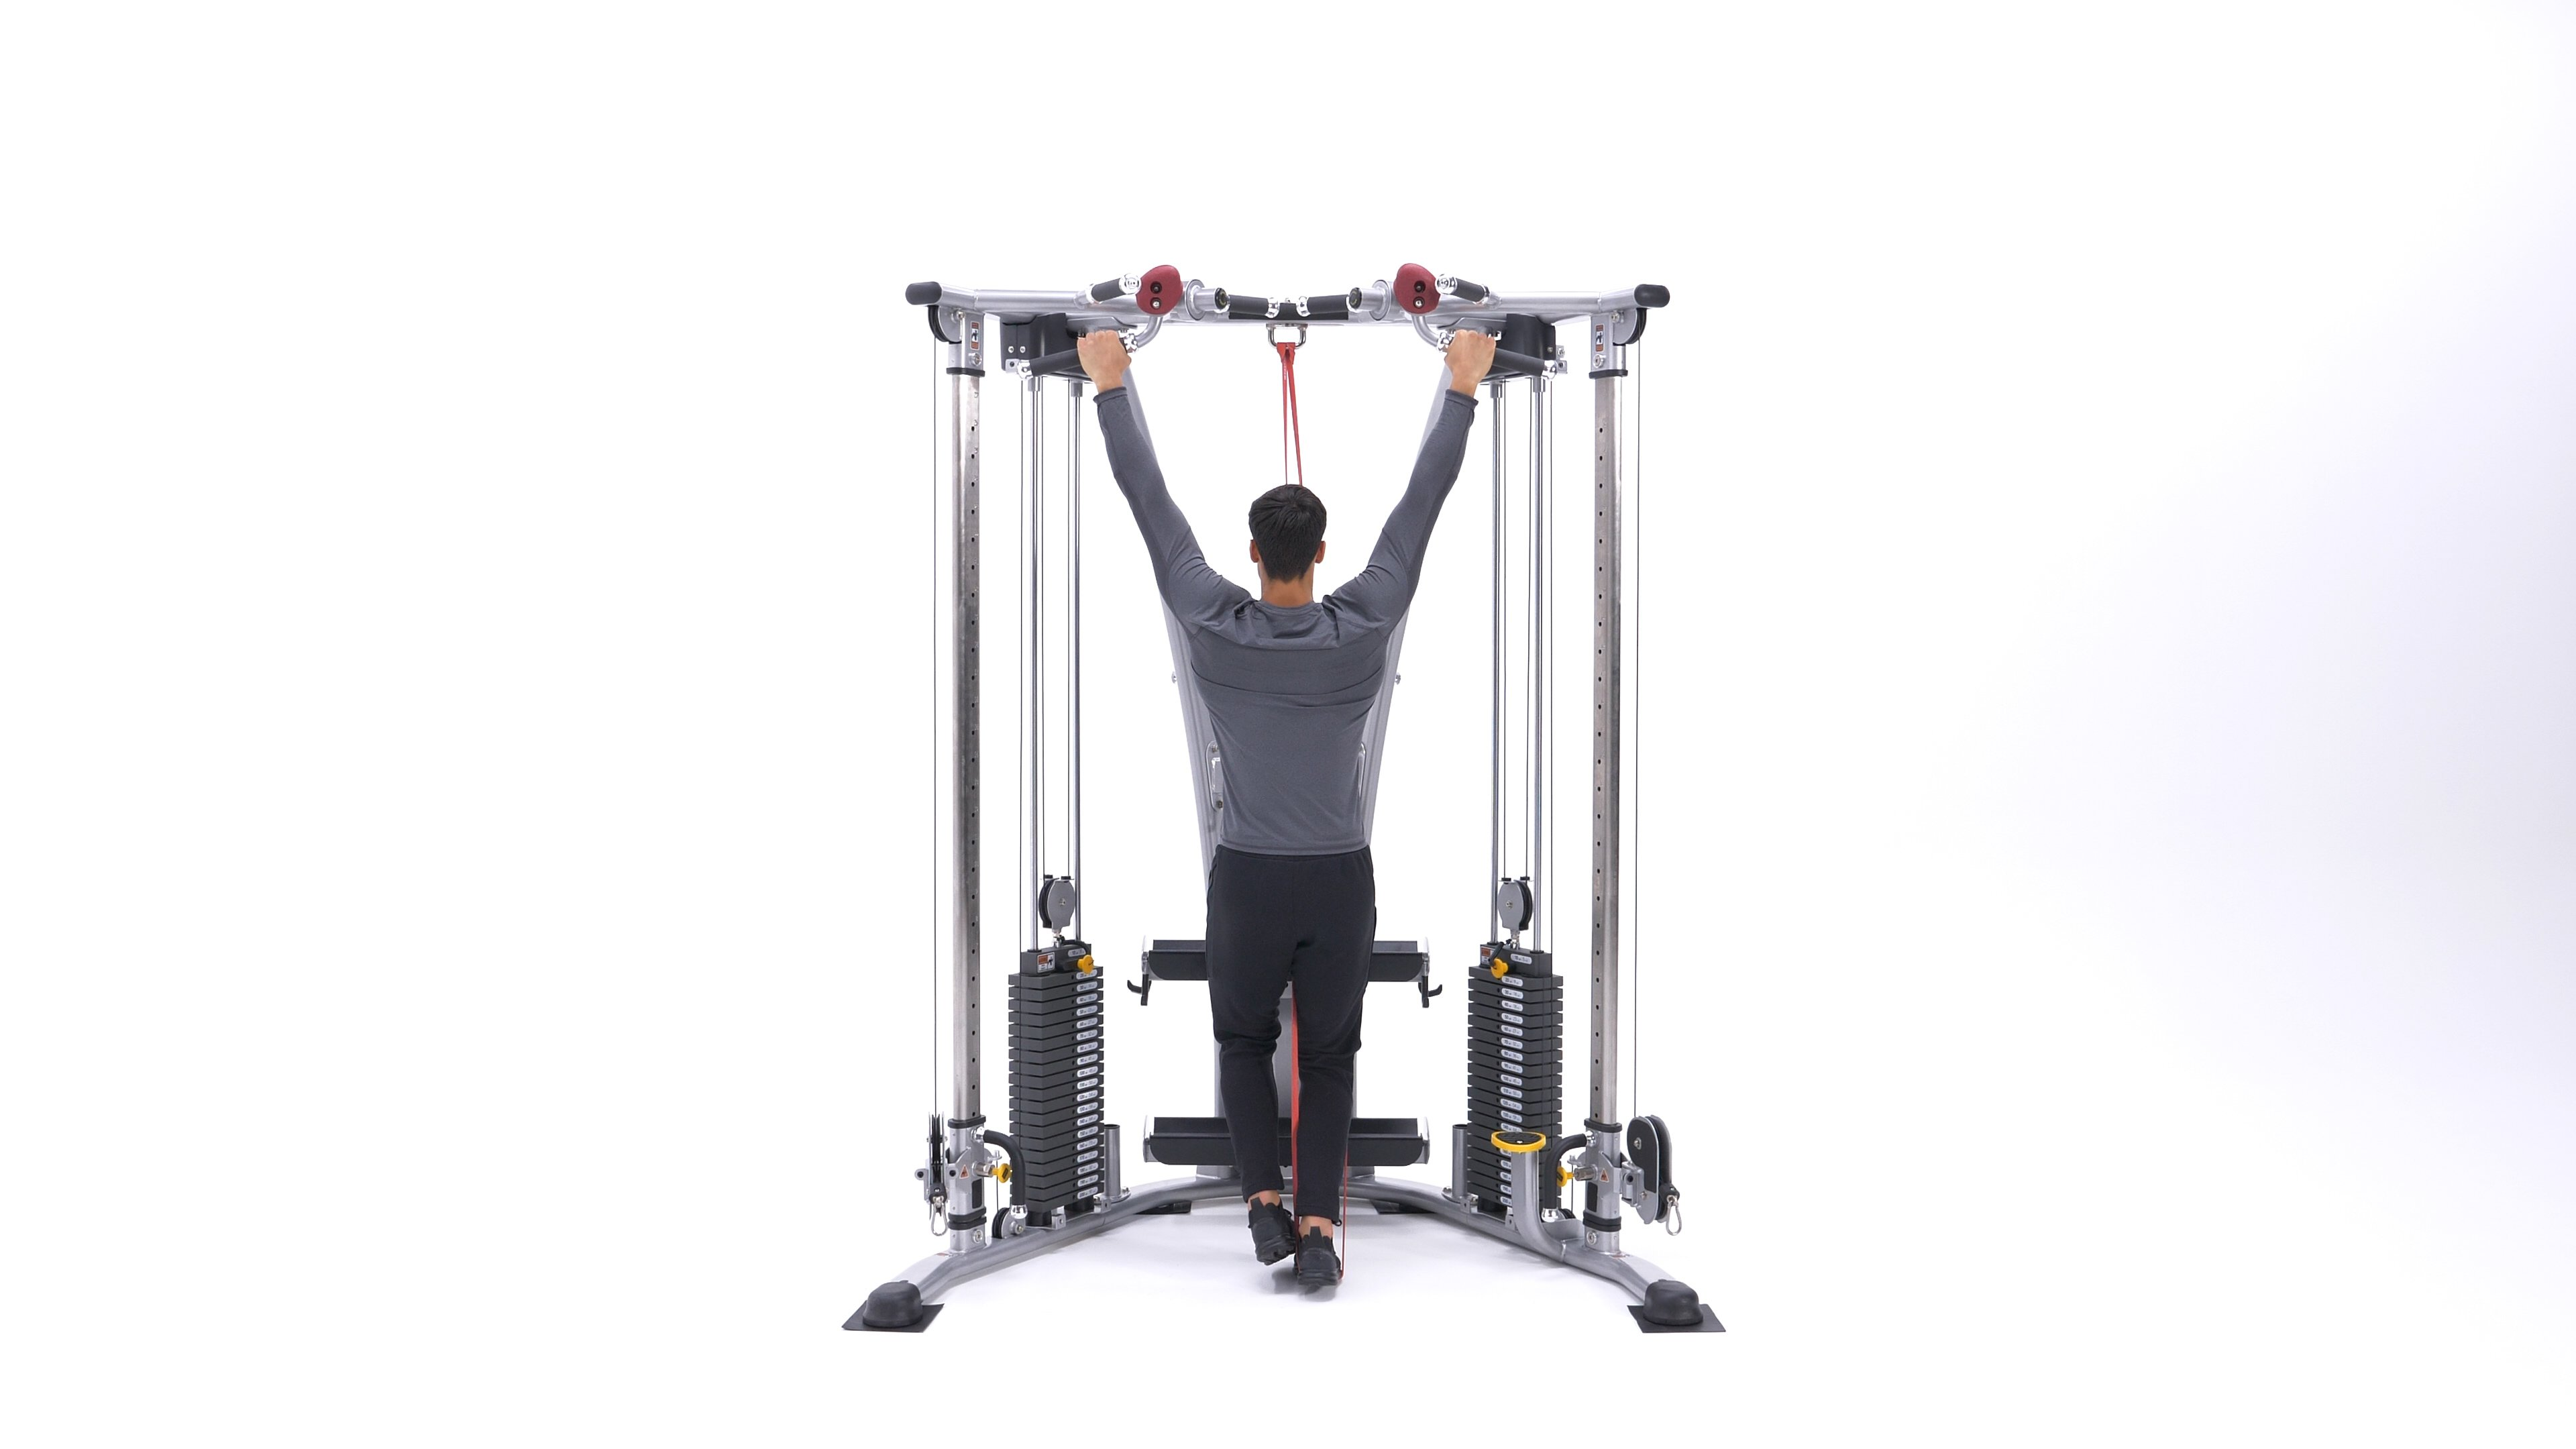 Band-assisted pull-up image